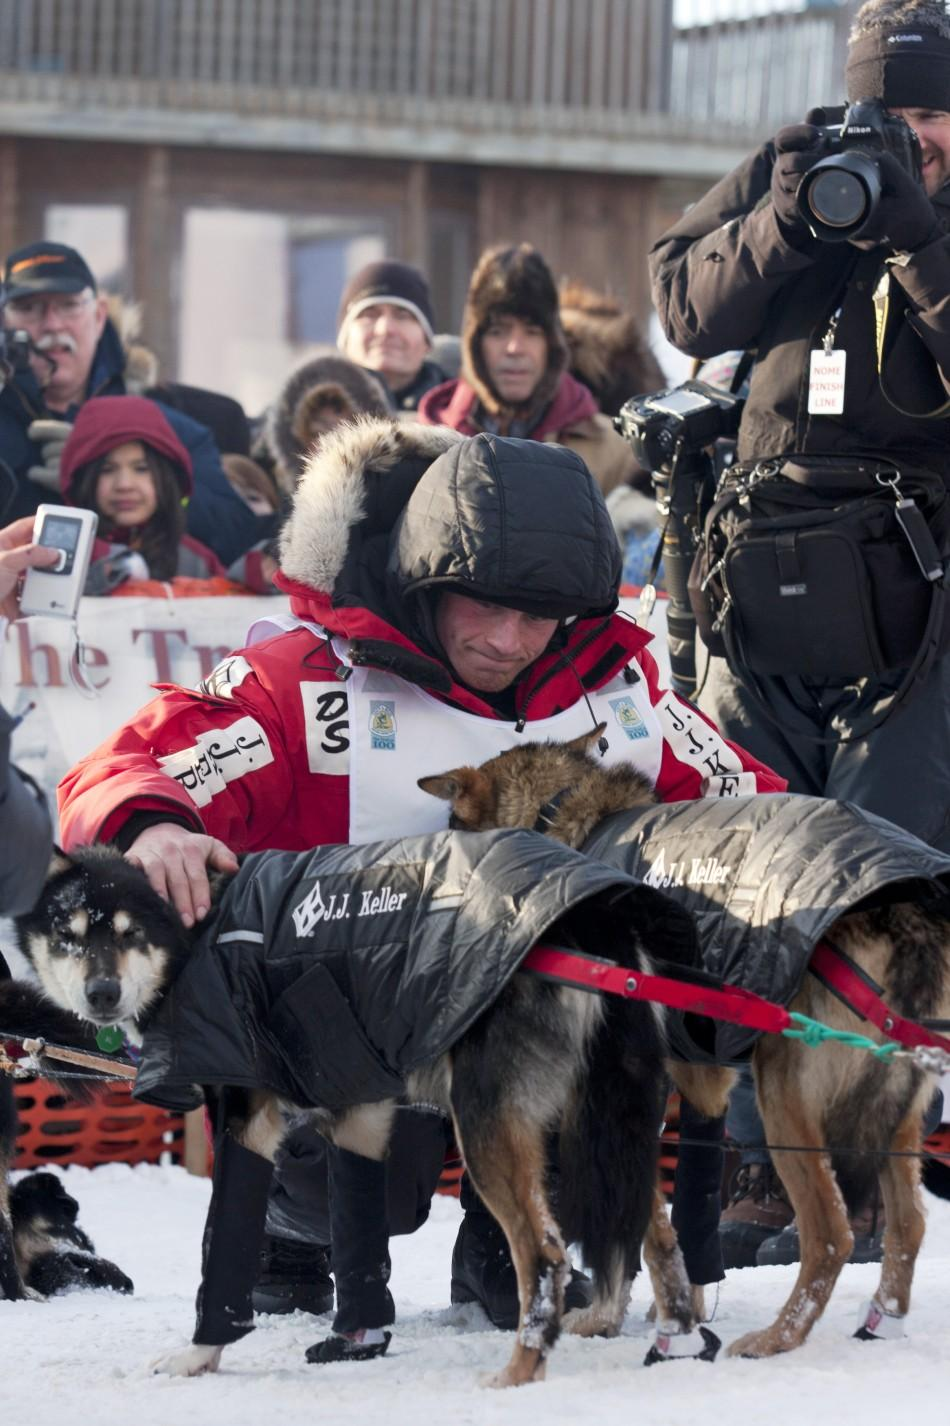 Musher Seavey pets dogs at the 40th annual Iditarod Trail Sled Dog Race in Nome, Alaska